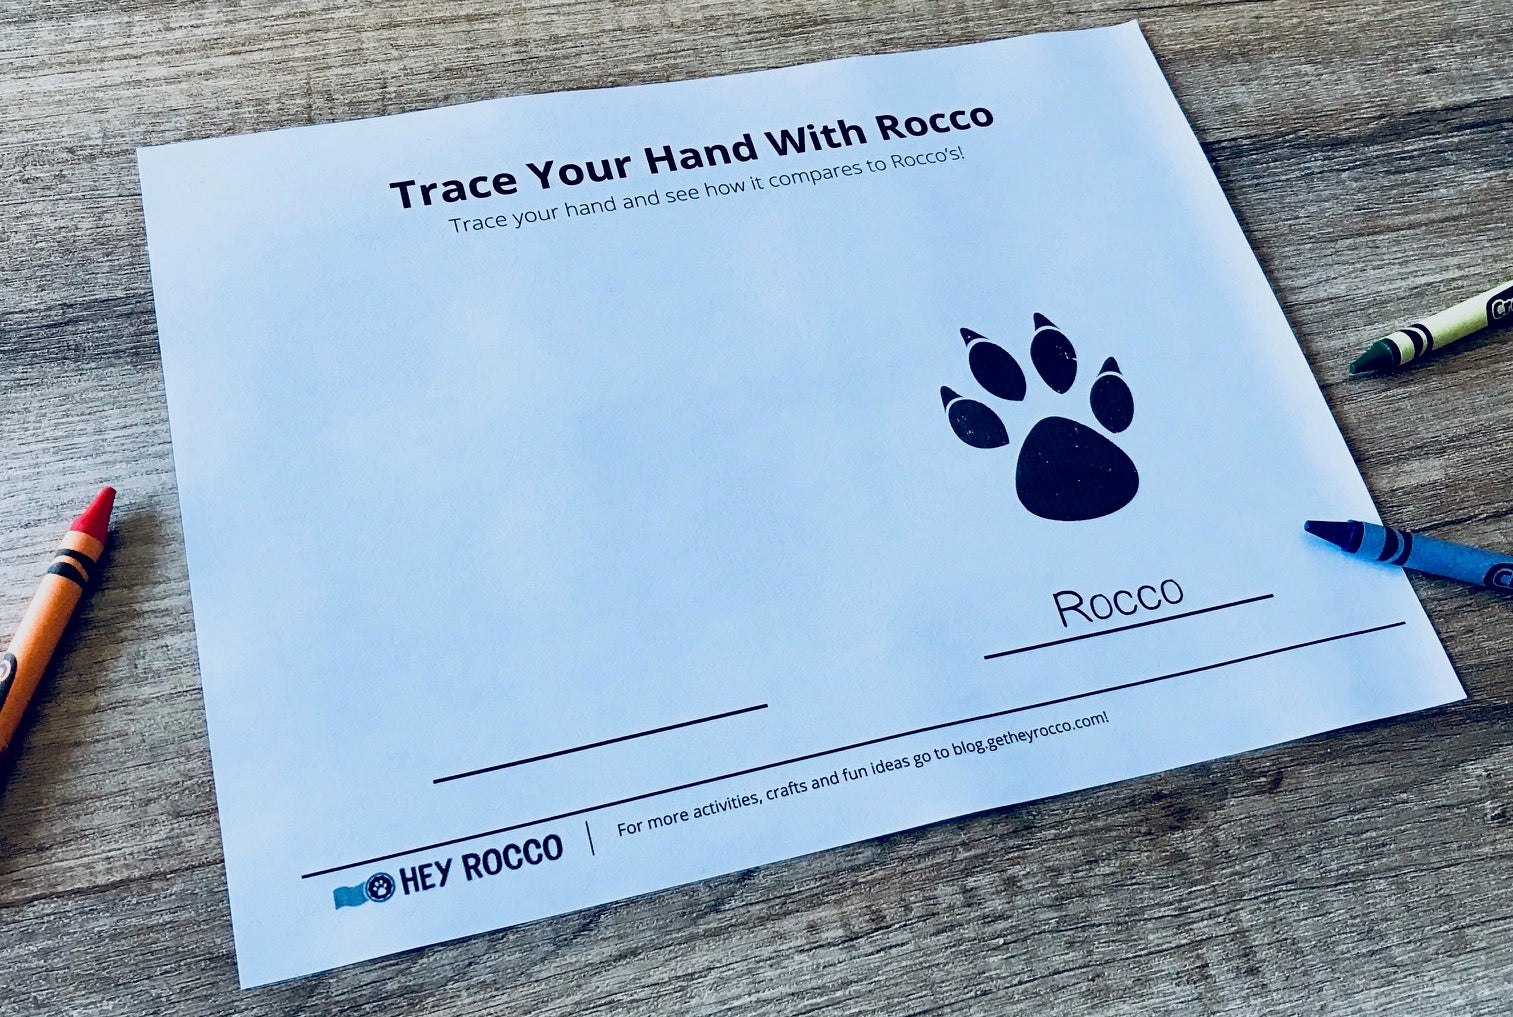 A Hand Tracing Activity - Is your hand like Rocco's?